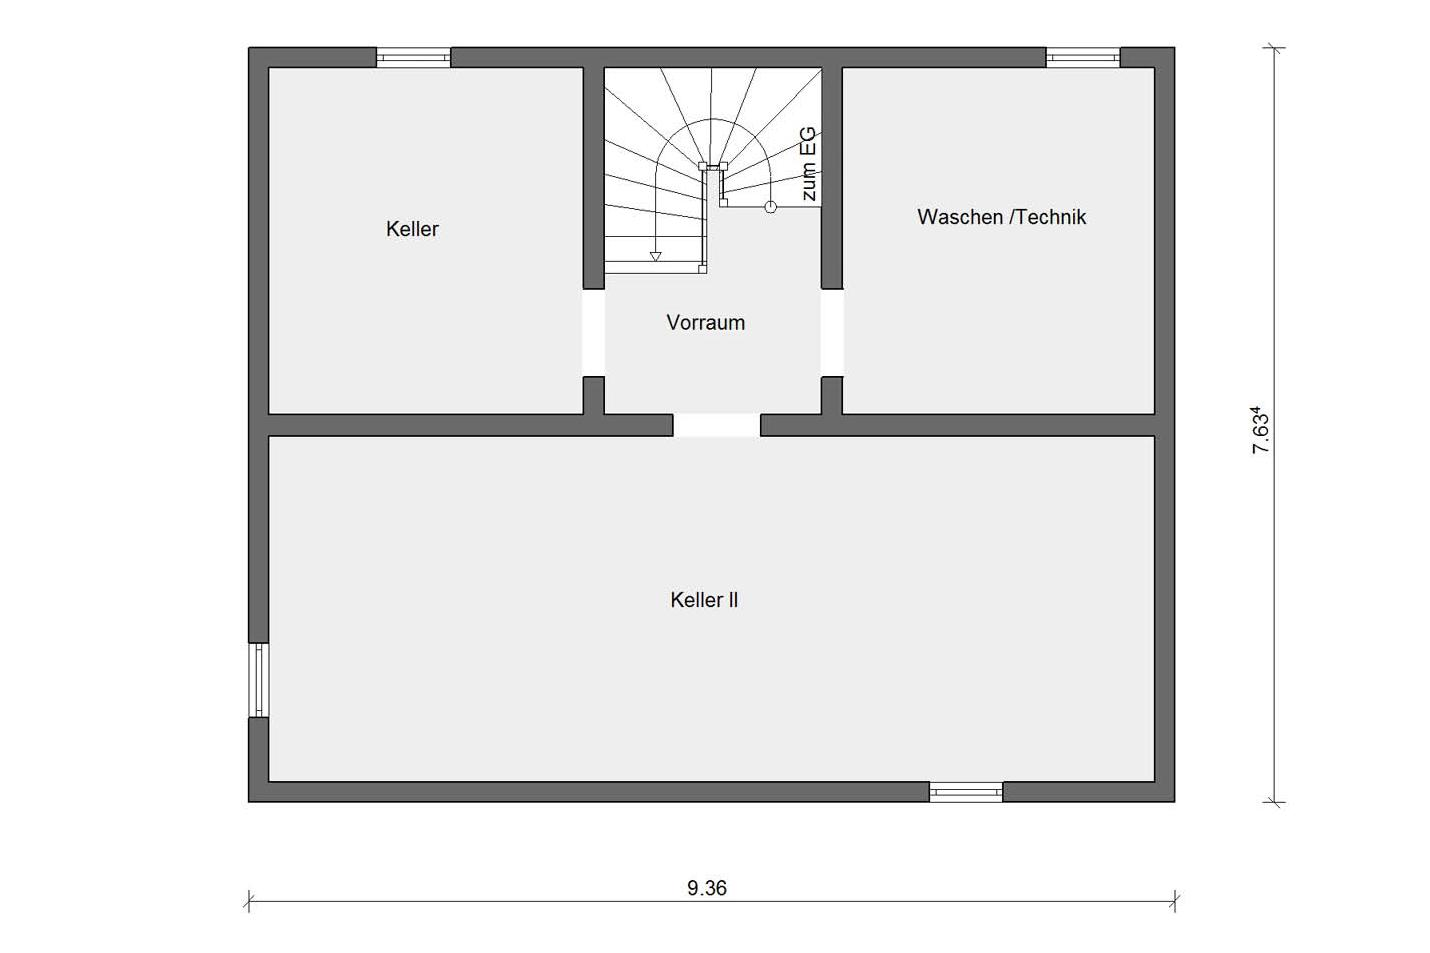 Basement floorplan E 15-123.4 compact family house